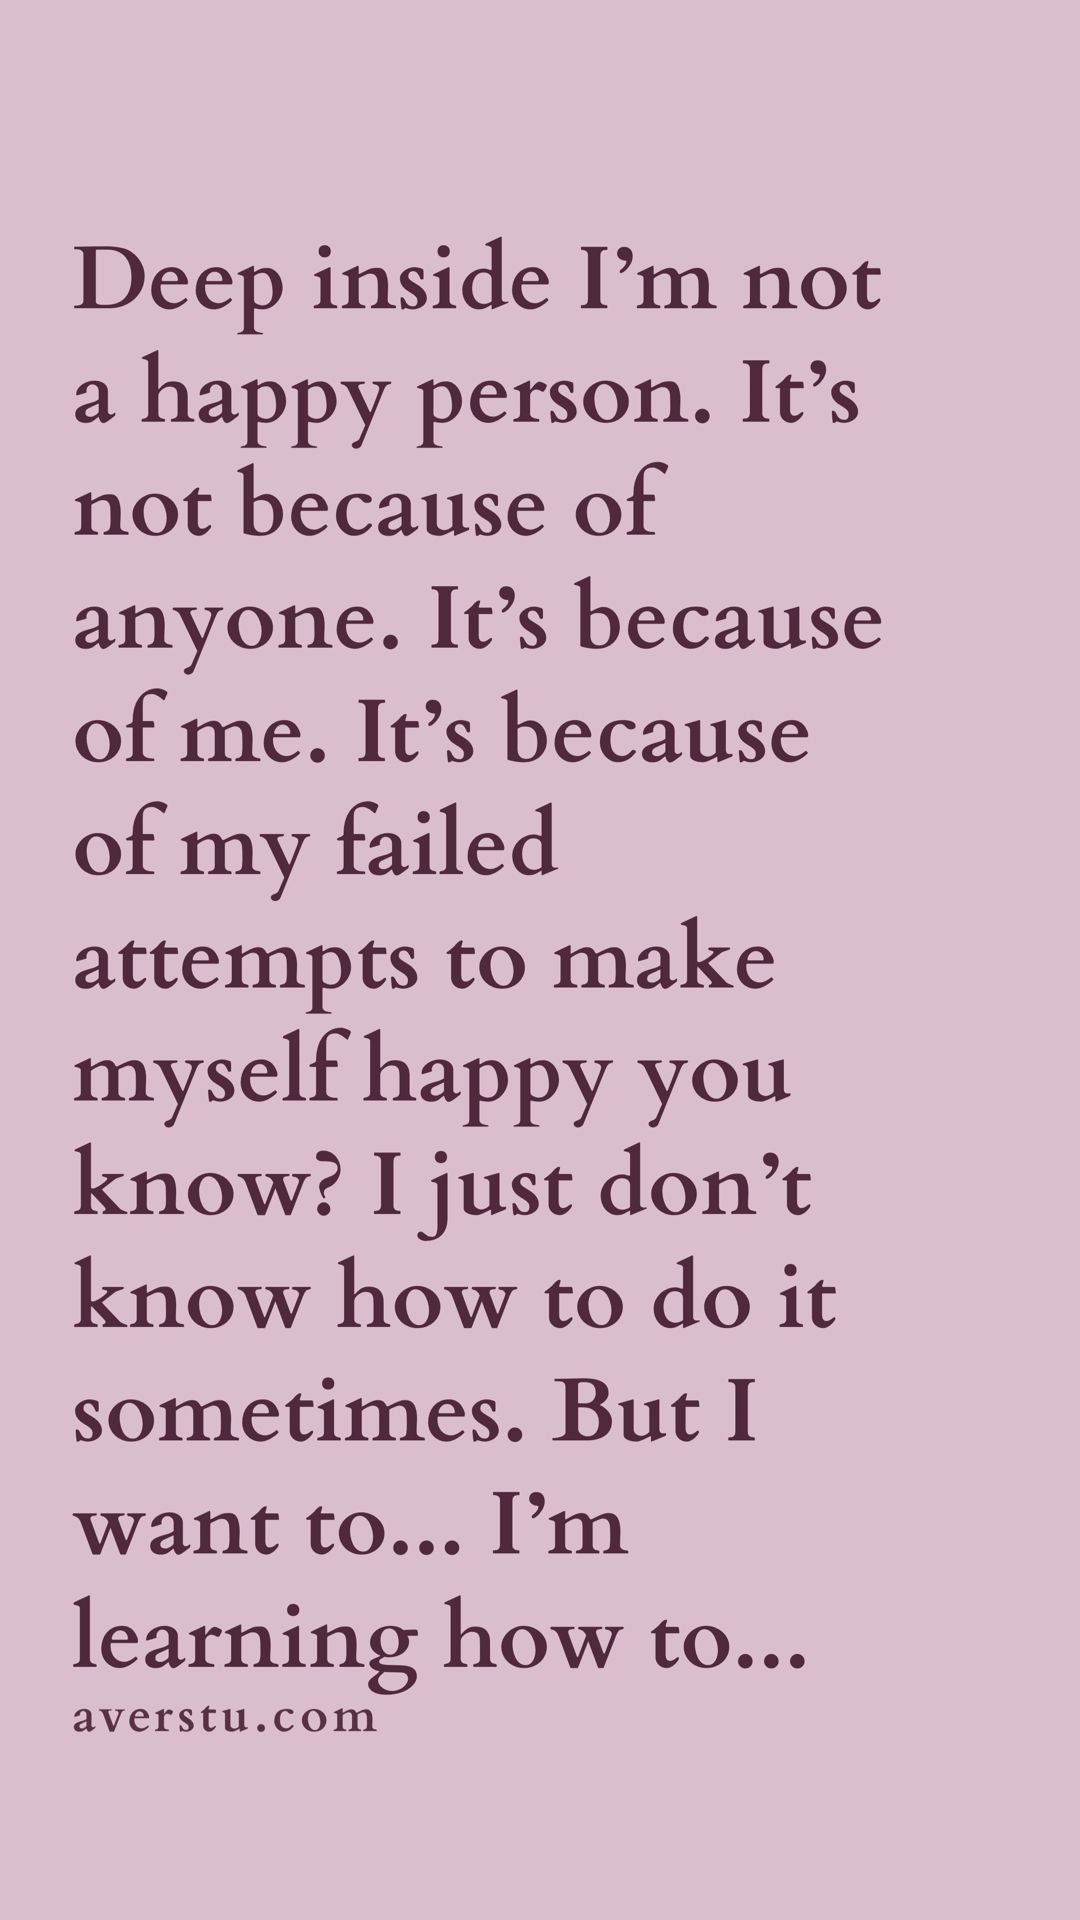 150 Top Self Love Quotes To Always Remember Part 1 Doing Me